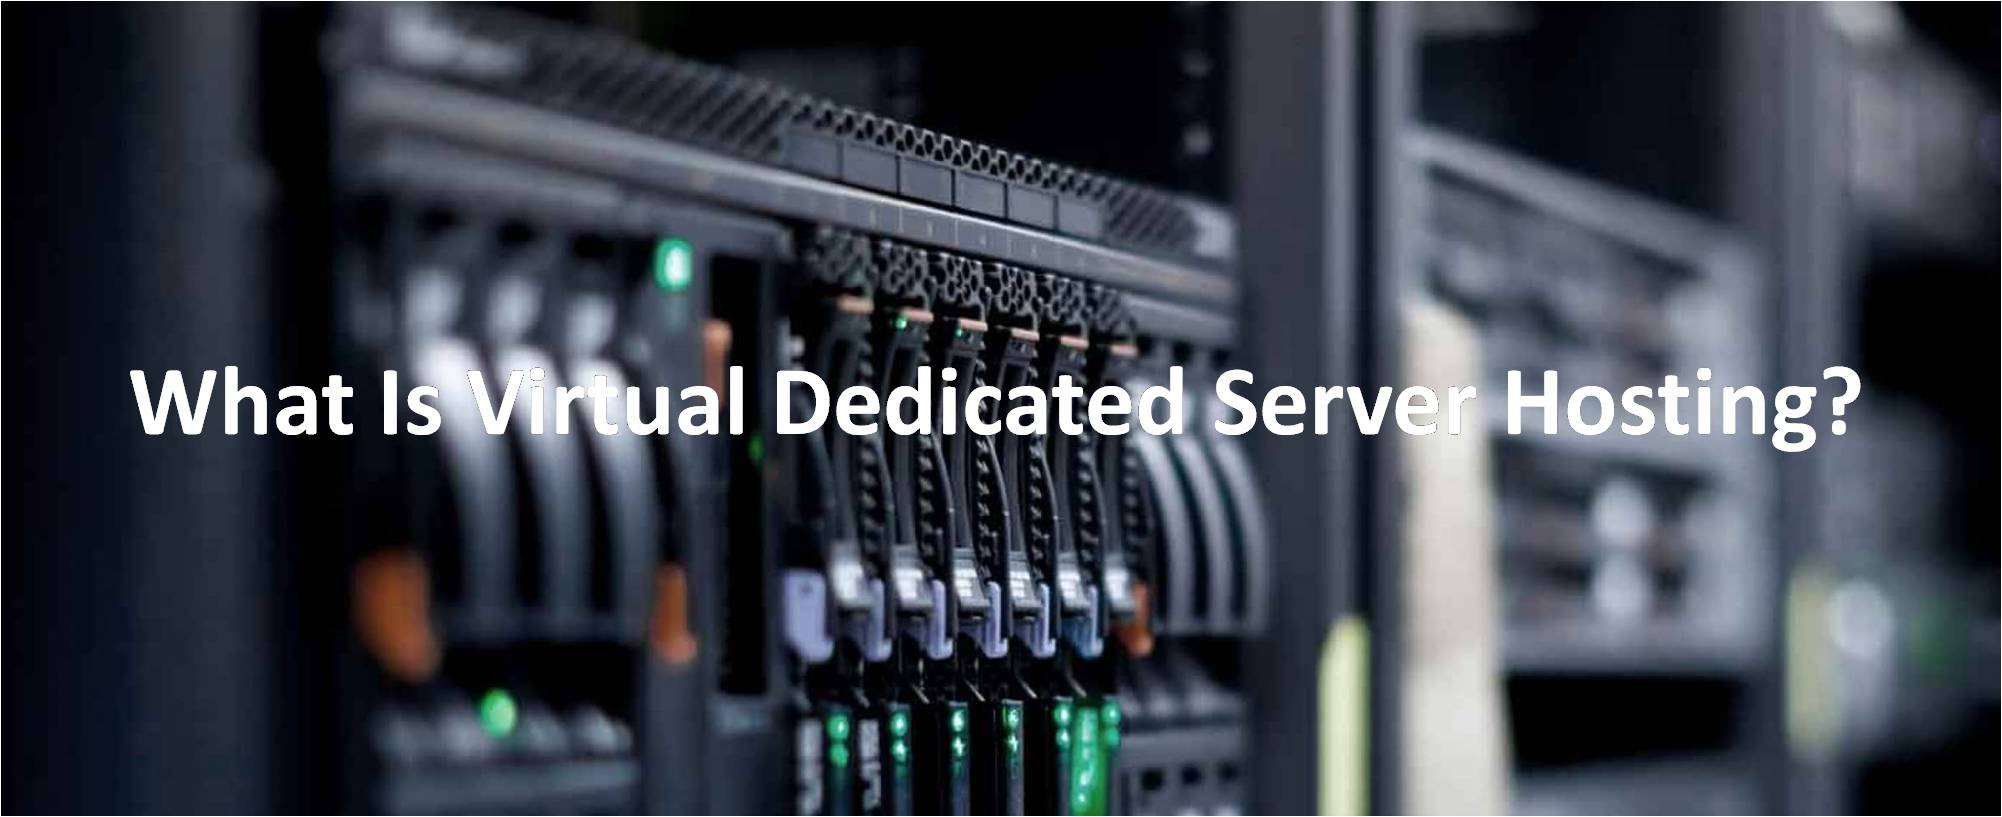 What Is Virtual Dedicated Server Hosting?